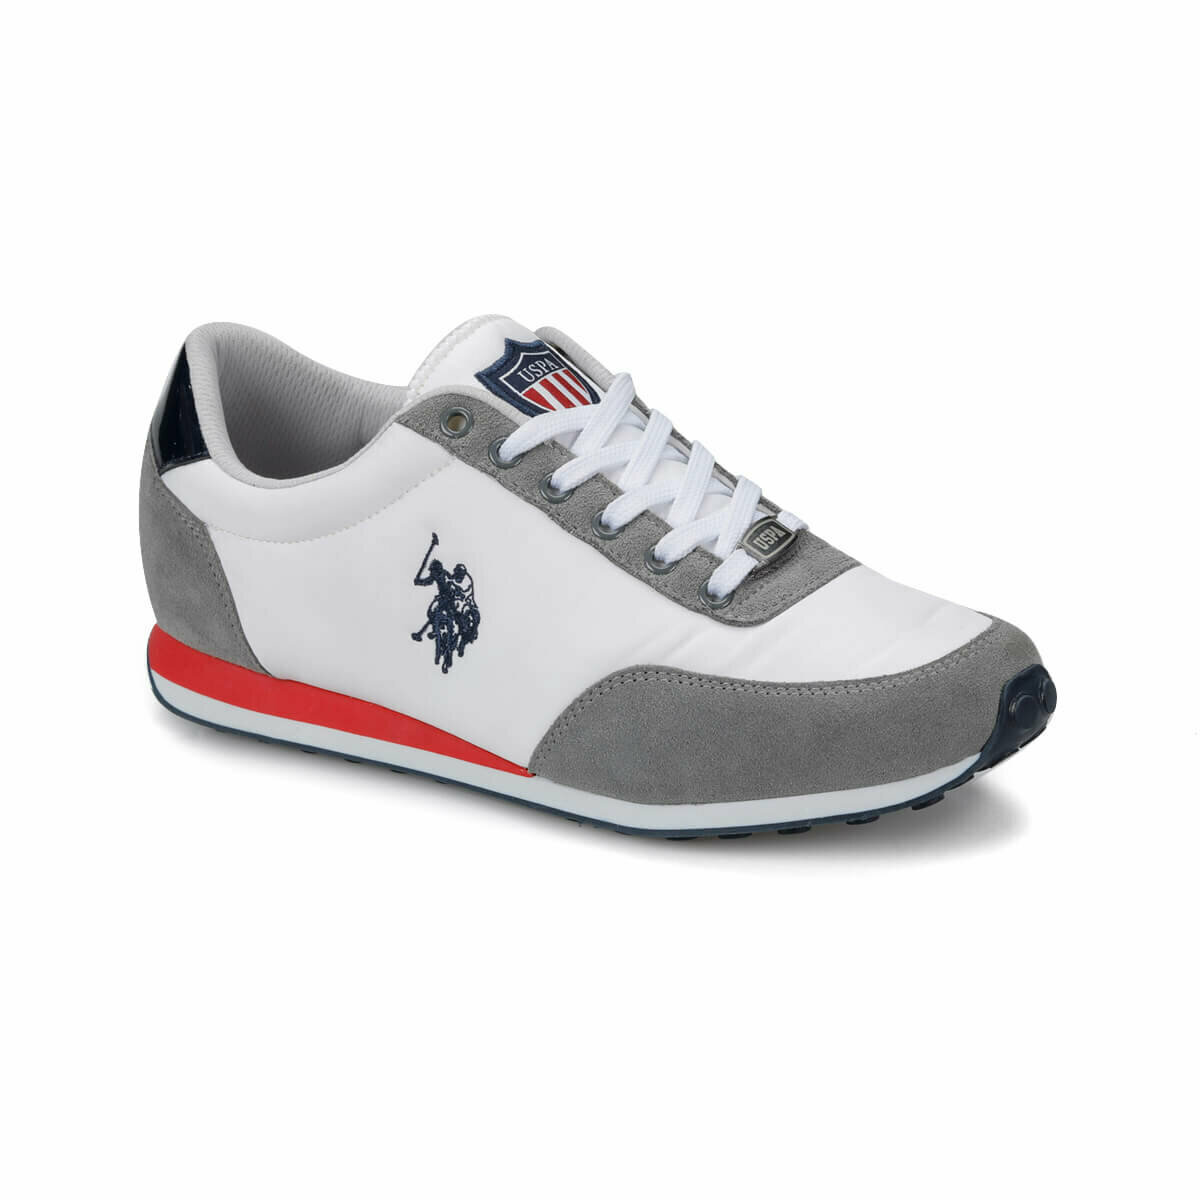 FLO PACIFIC White Men 'S Sneaker Shoes U.S. POLO ASSN.